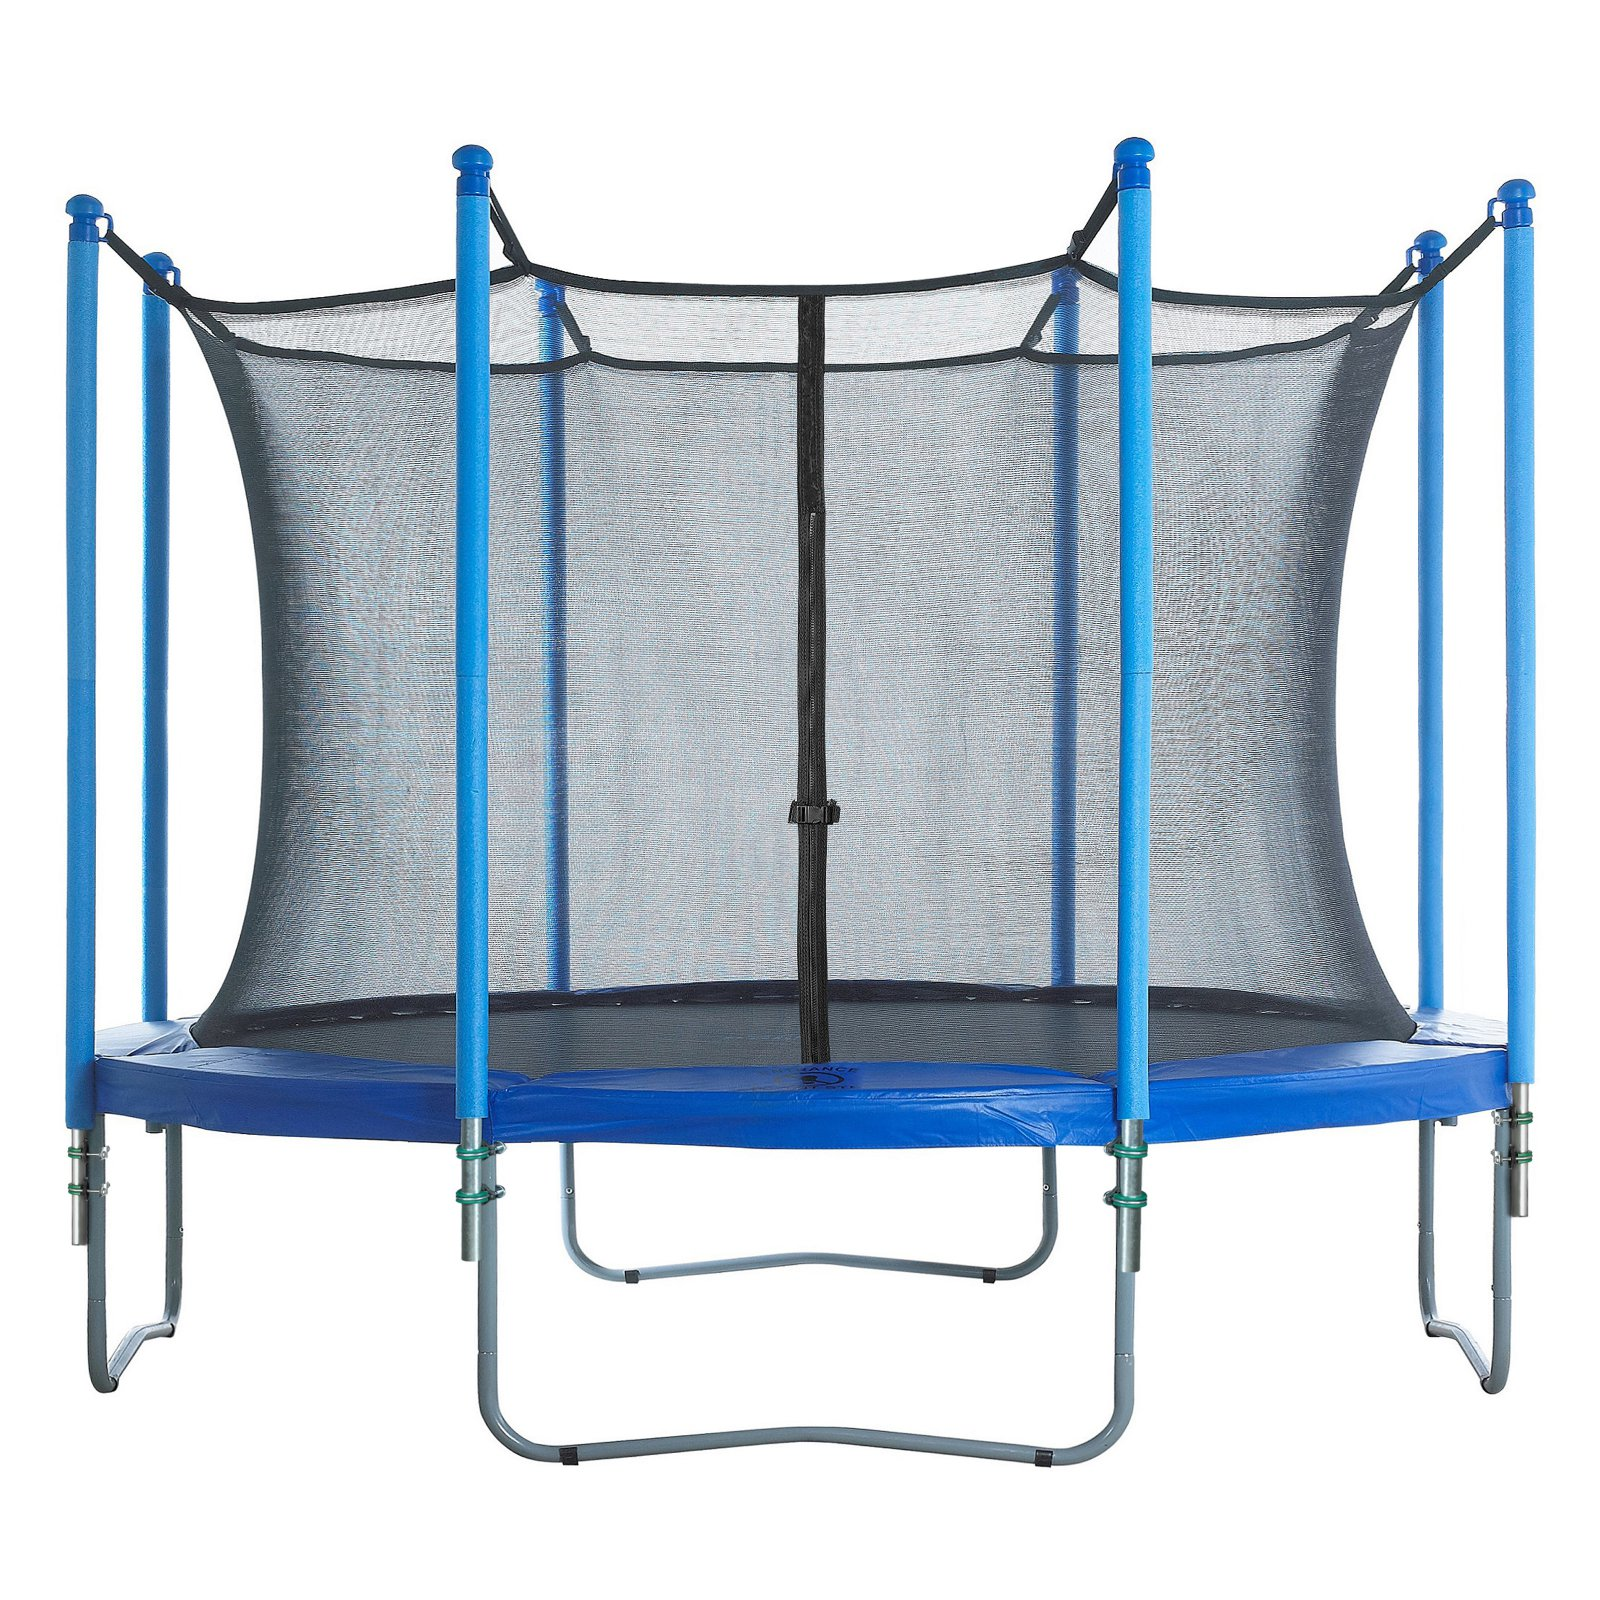 Upper Bounce Trampoline Enclosure Set for W-Shaped Legs